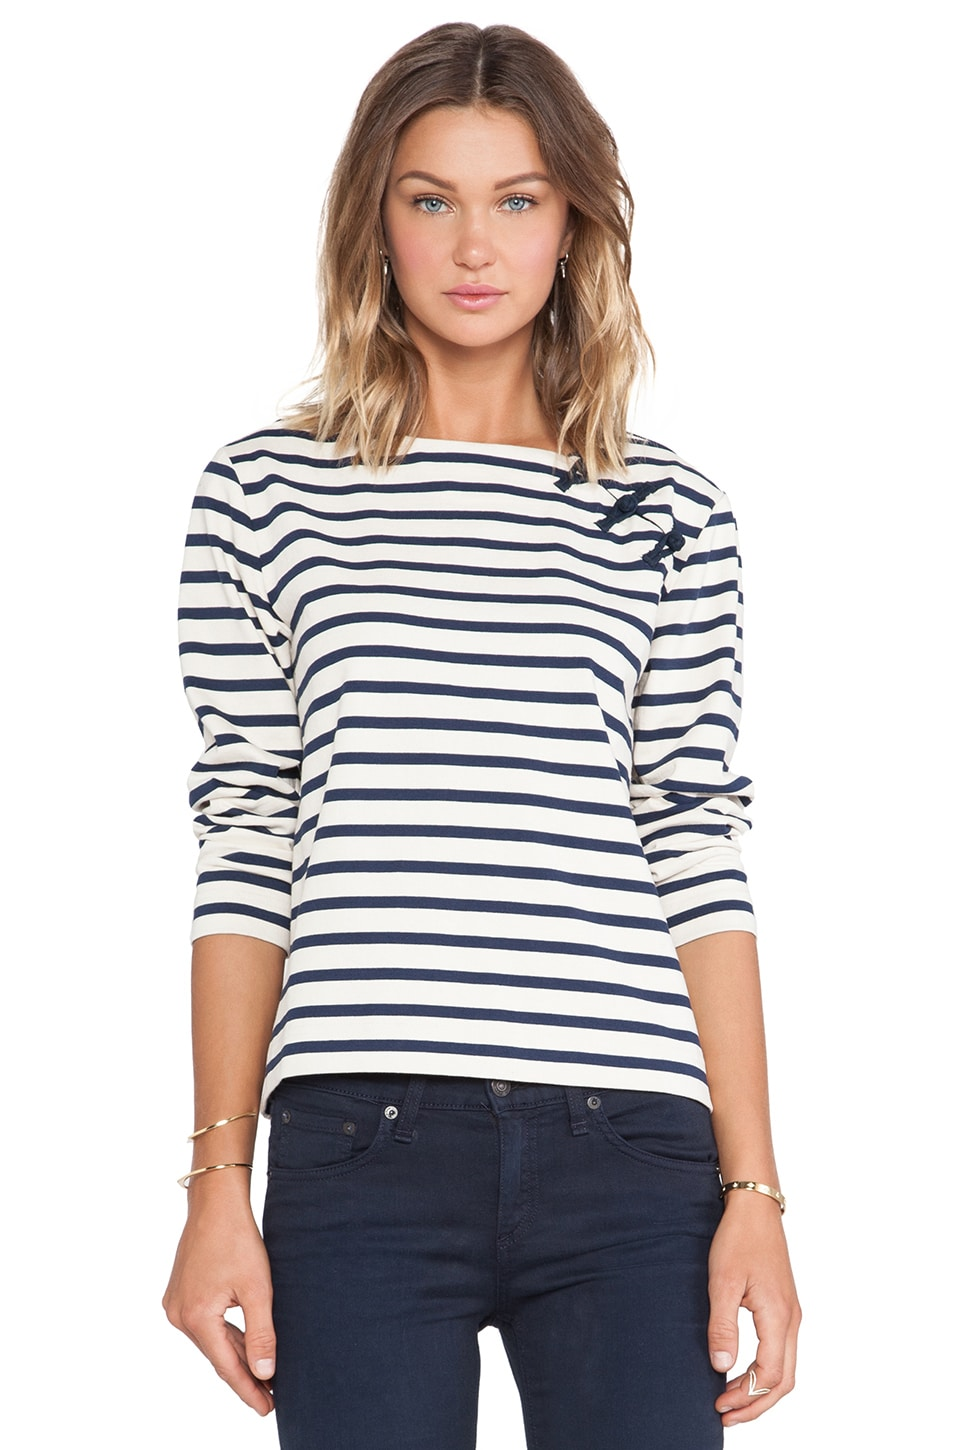 Marc by Marc Jacobs Jacquelyn Stripe Top in Marina Multi